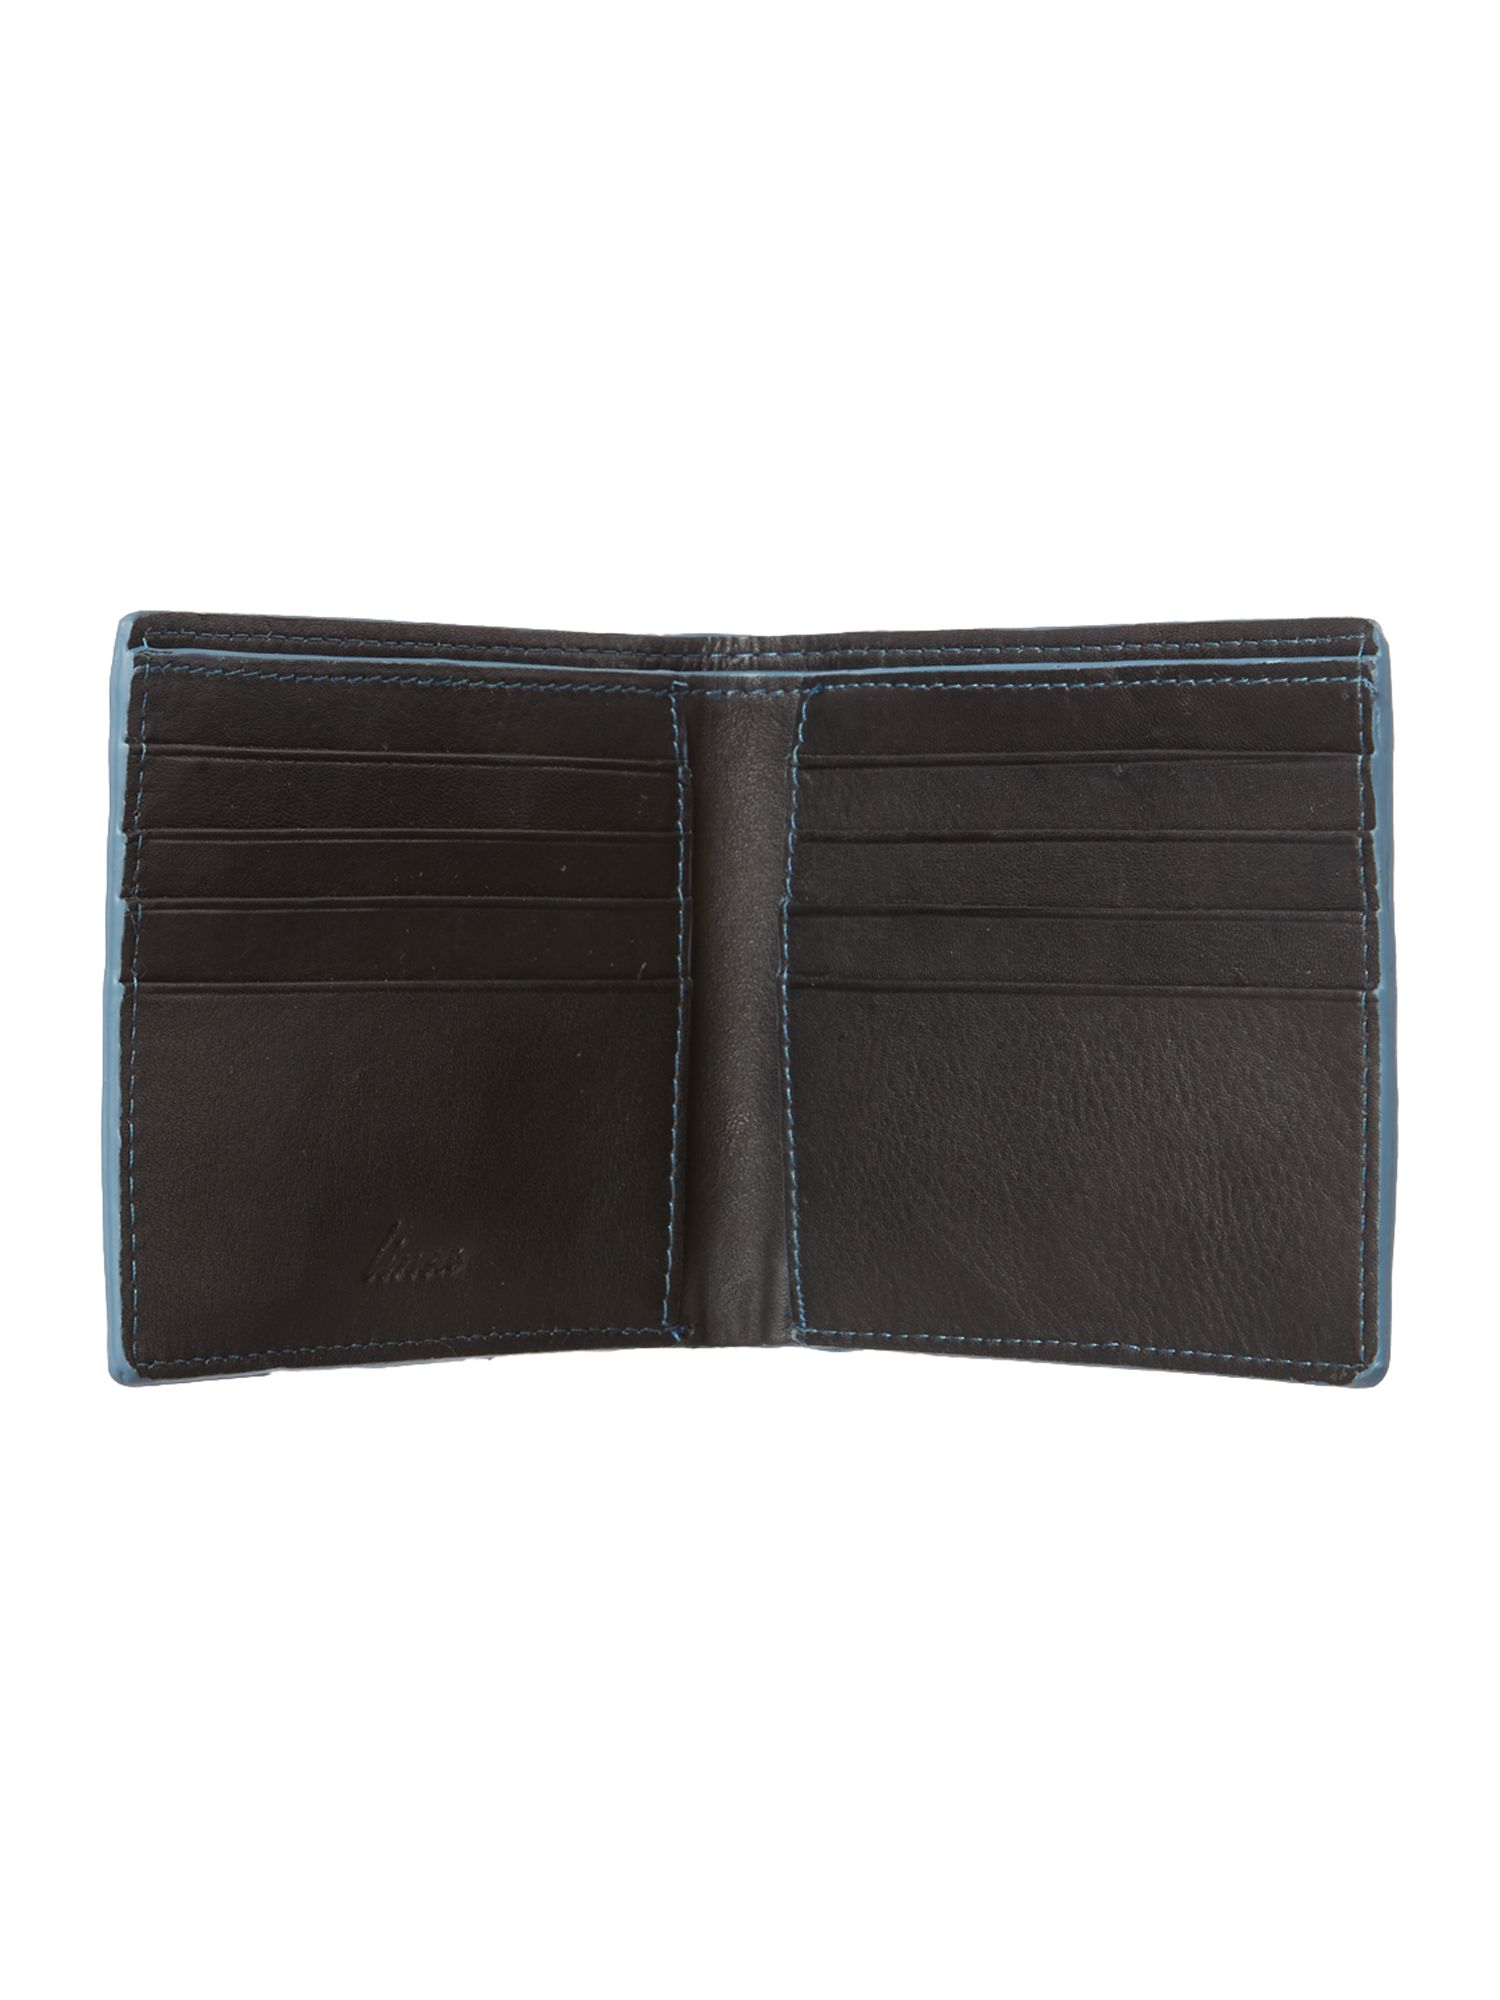 Contrast leather bifold wallet